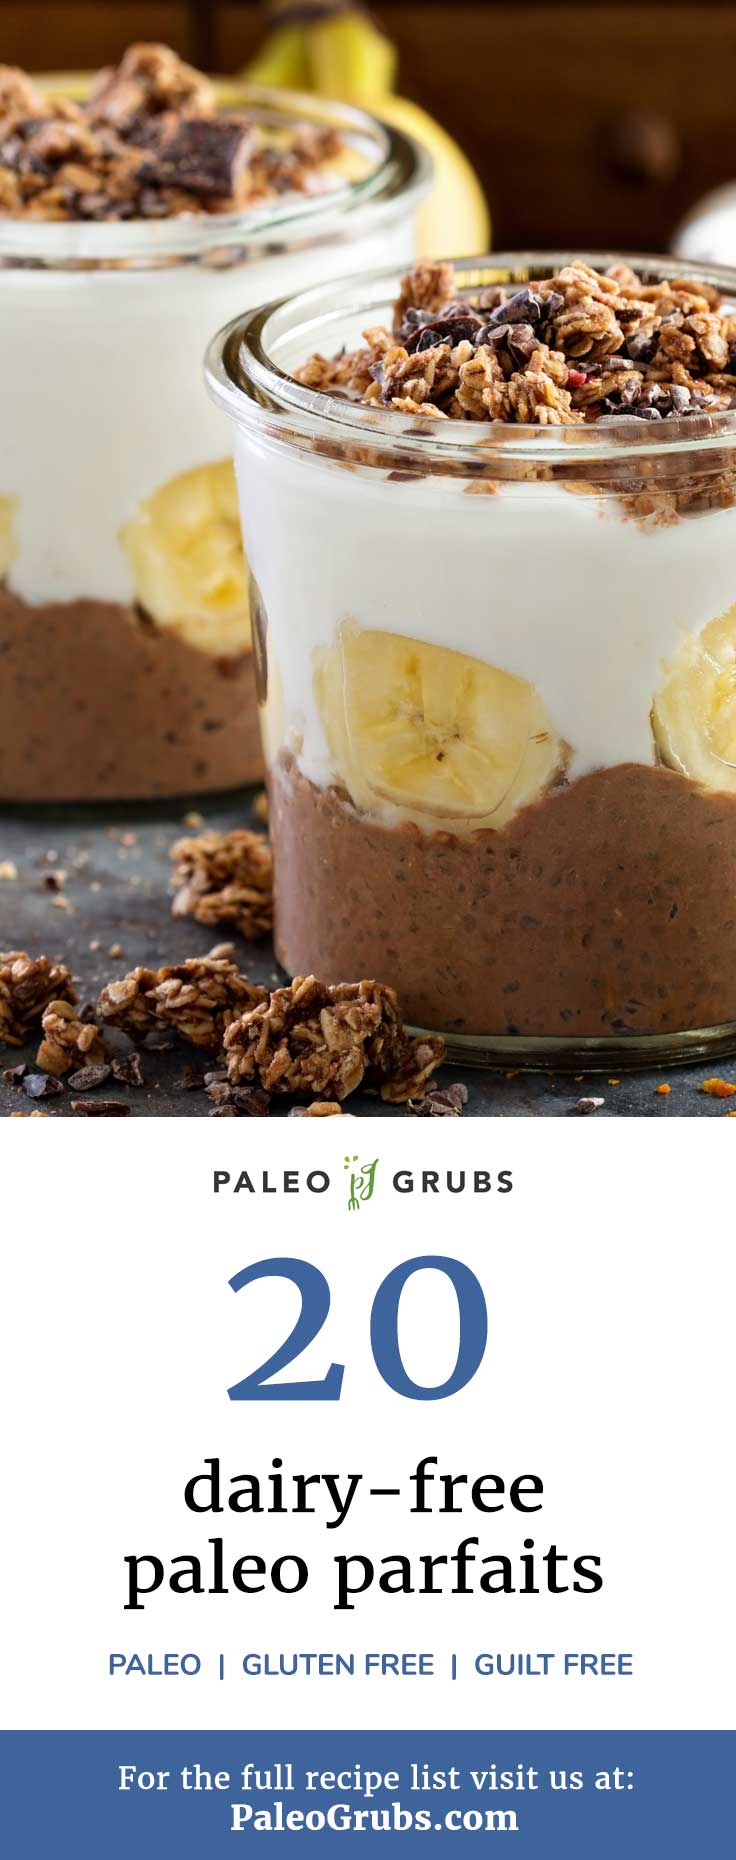 Yes! Parfait is back on the menu with the help of these paleo parfait recipes. Layer after layer of yumminess, and I don't have to force myself to resist dessert.